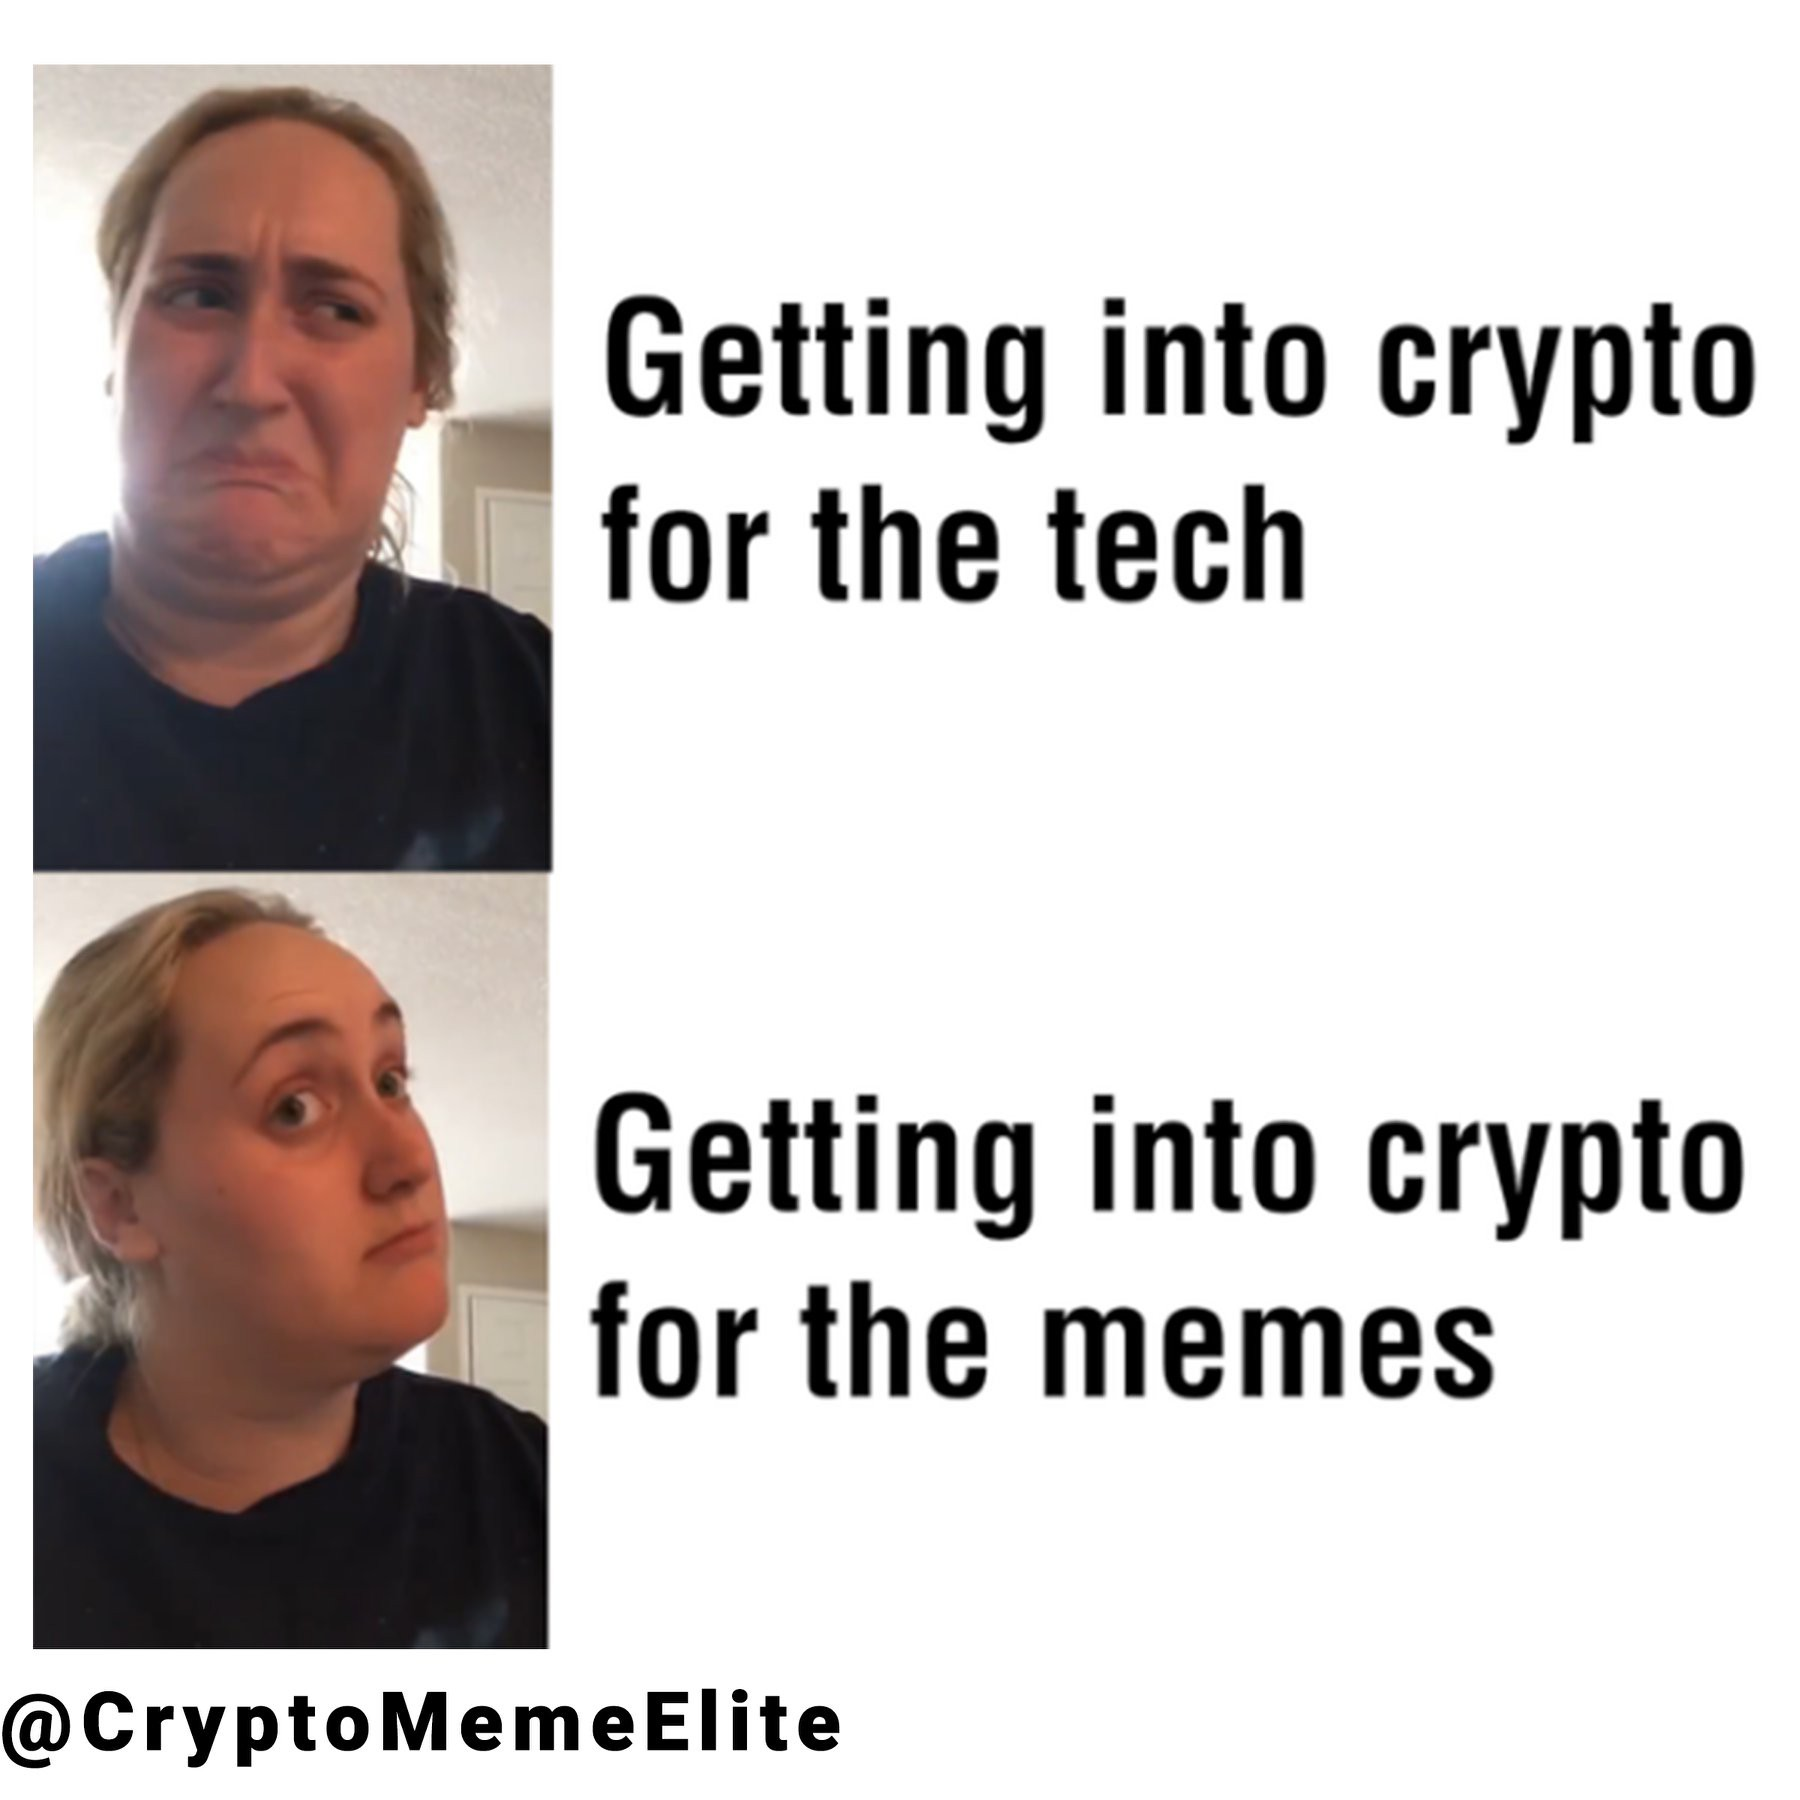 Getting into crypto